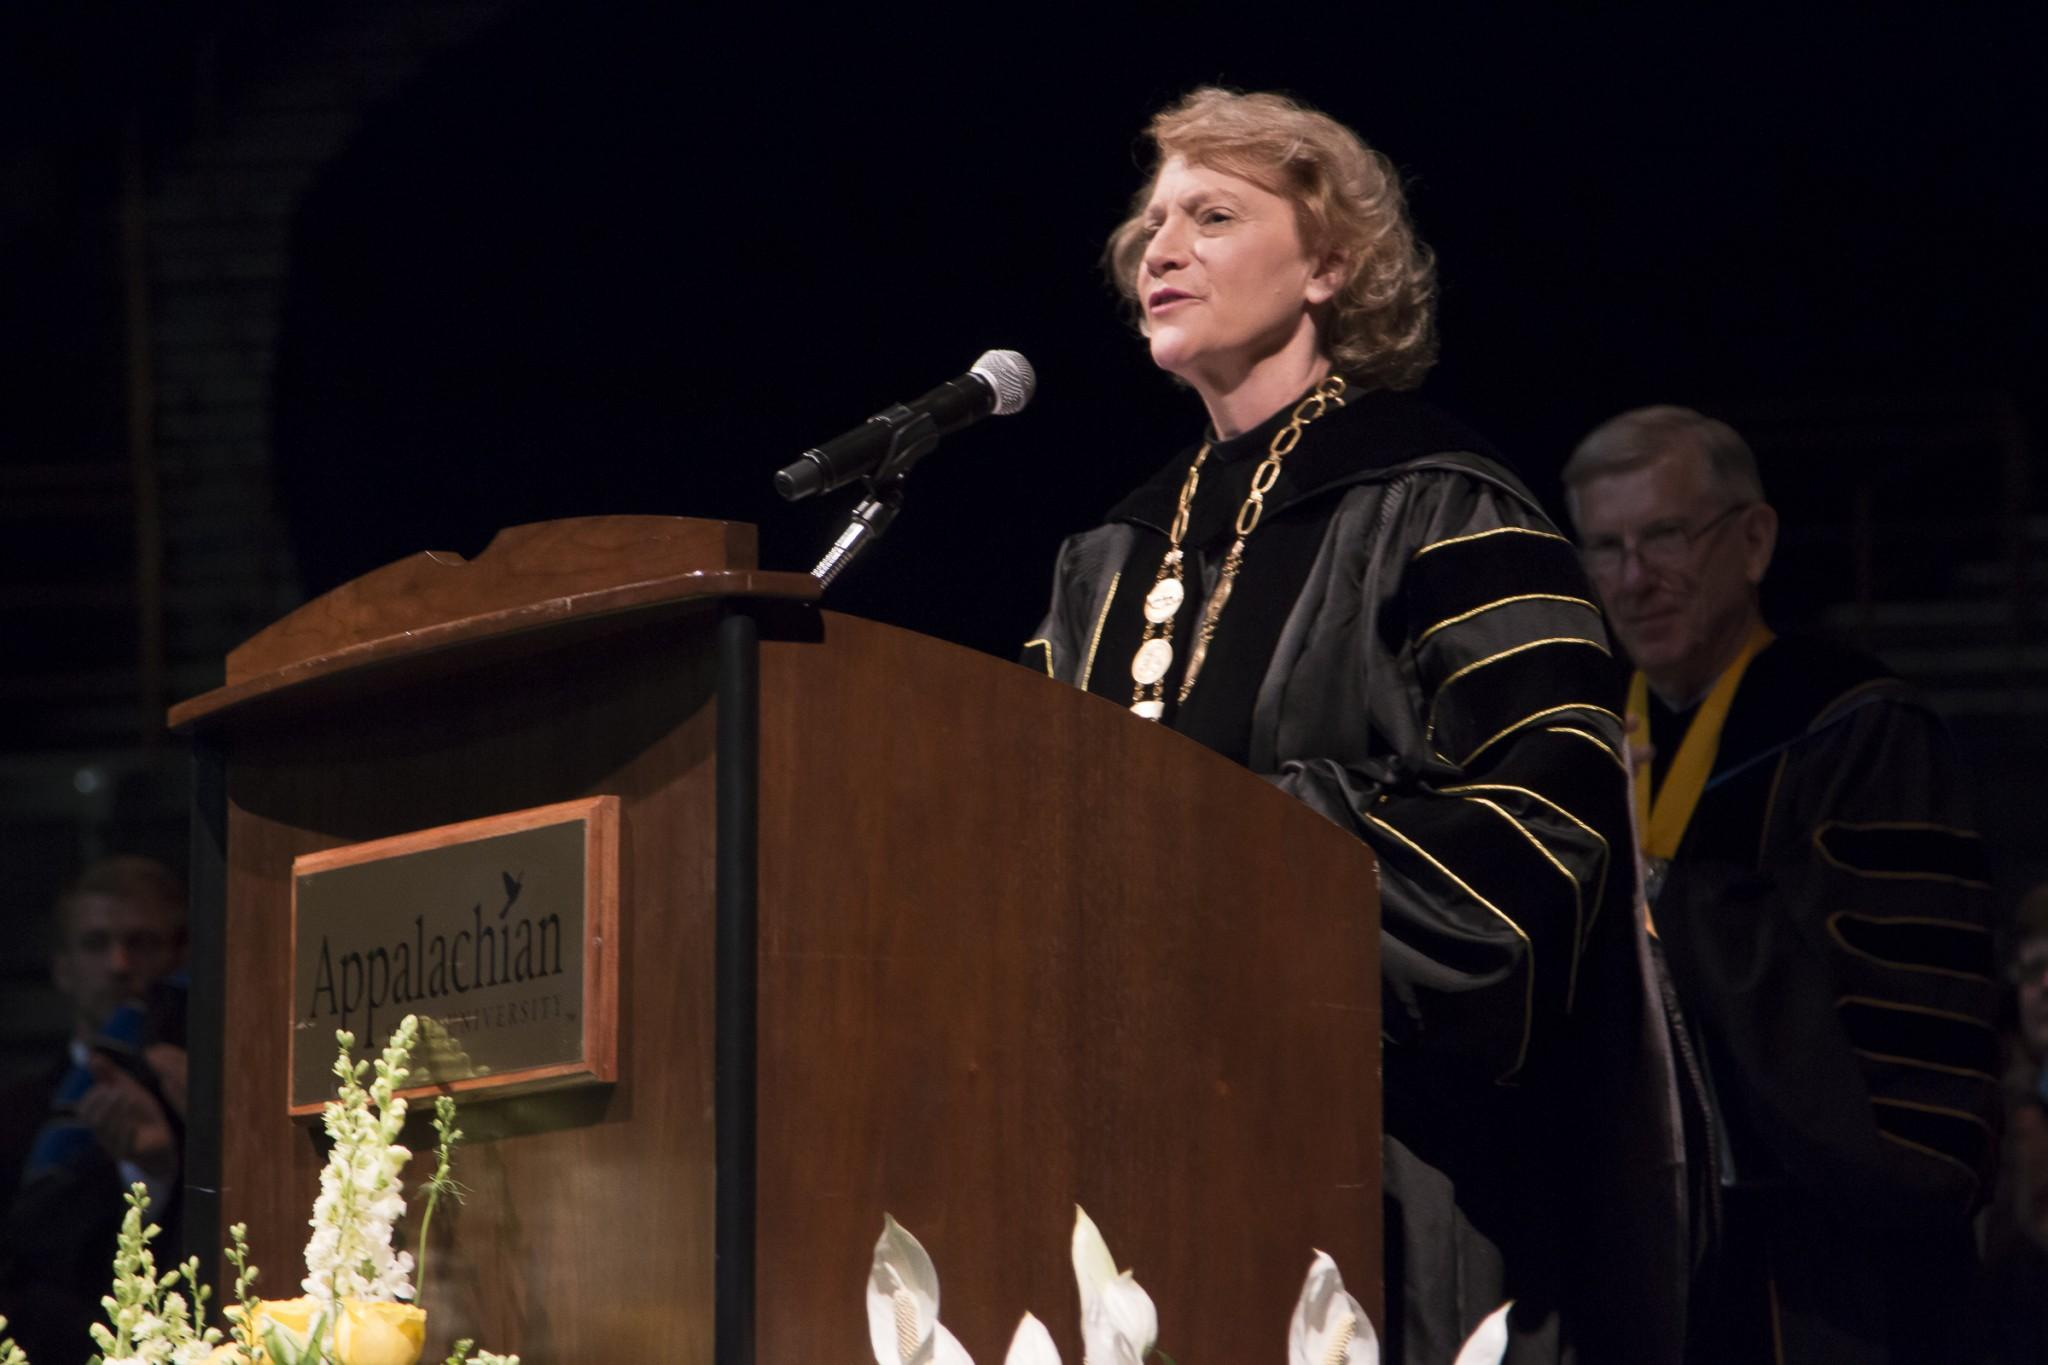 Everts installed as seventh chancellor, McCrory announces nursing school funding